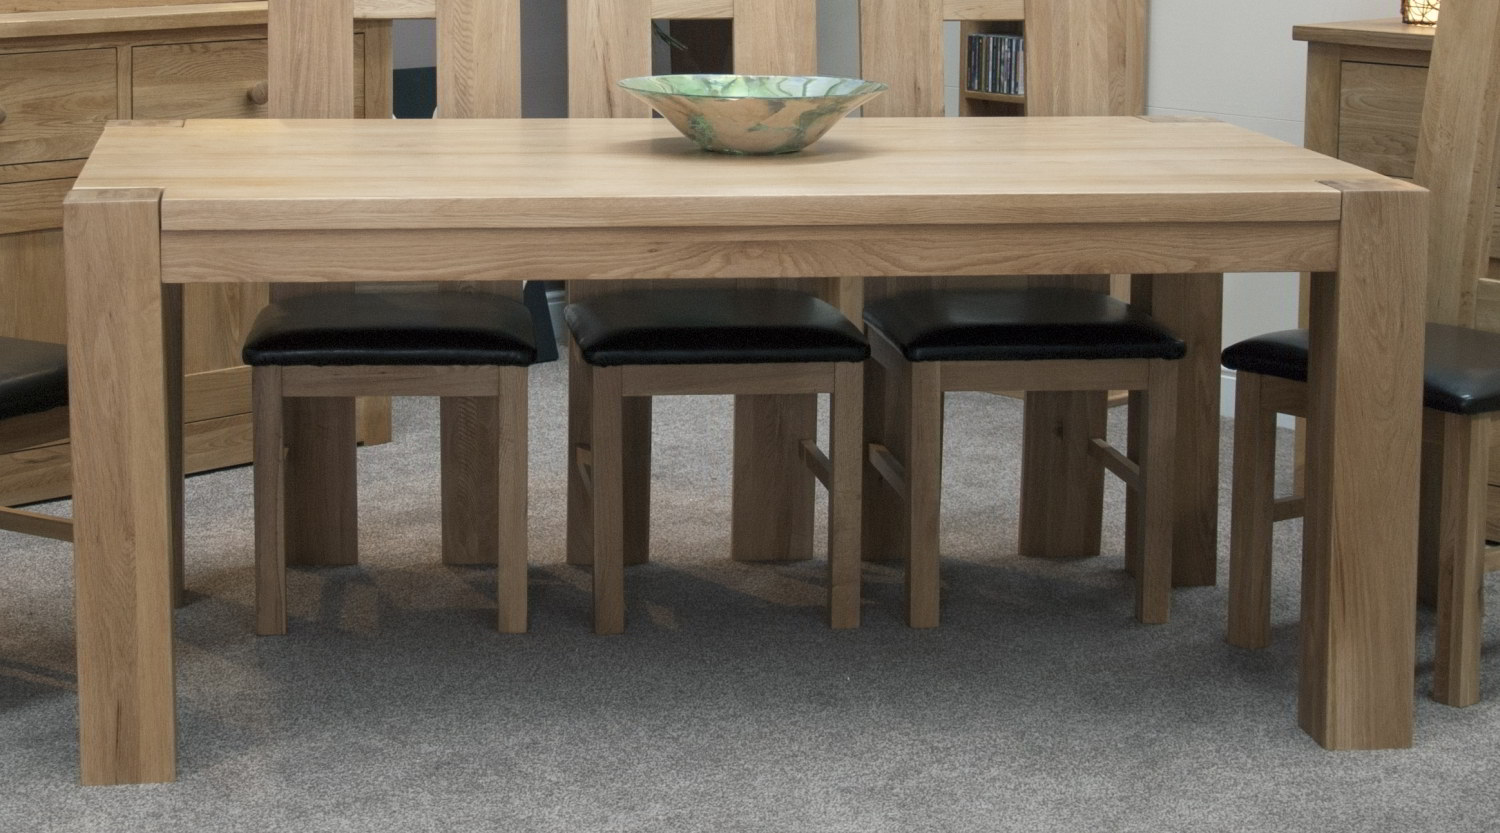 Pemberton Solid Oak Dining Room Furniture Large Chunky Dining Table | EBay